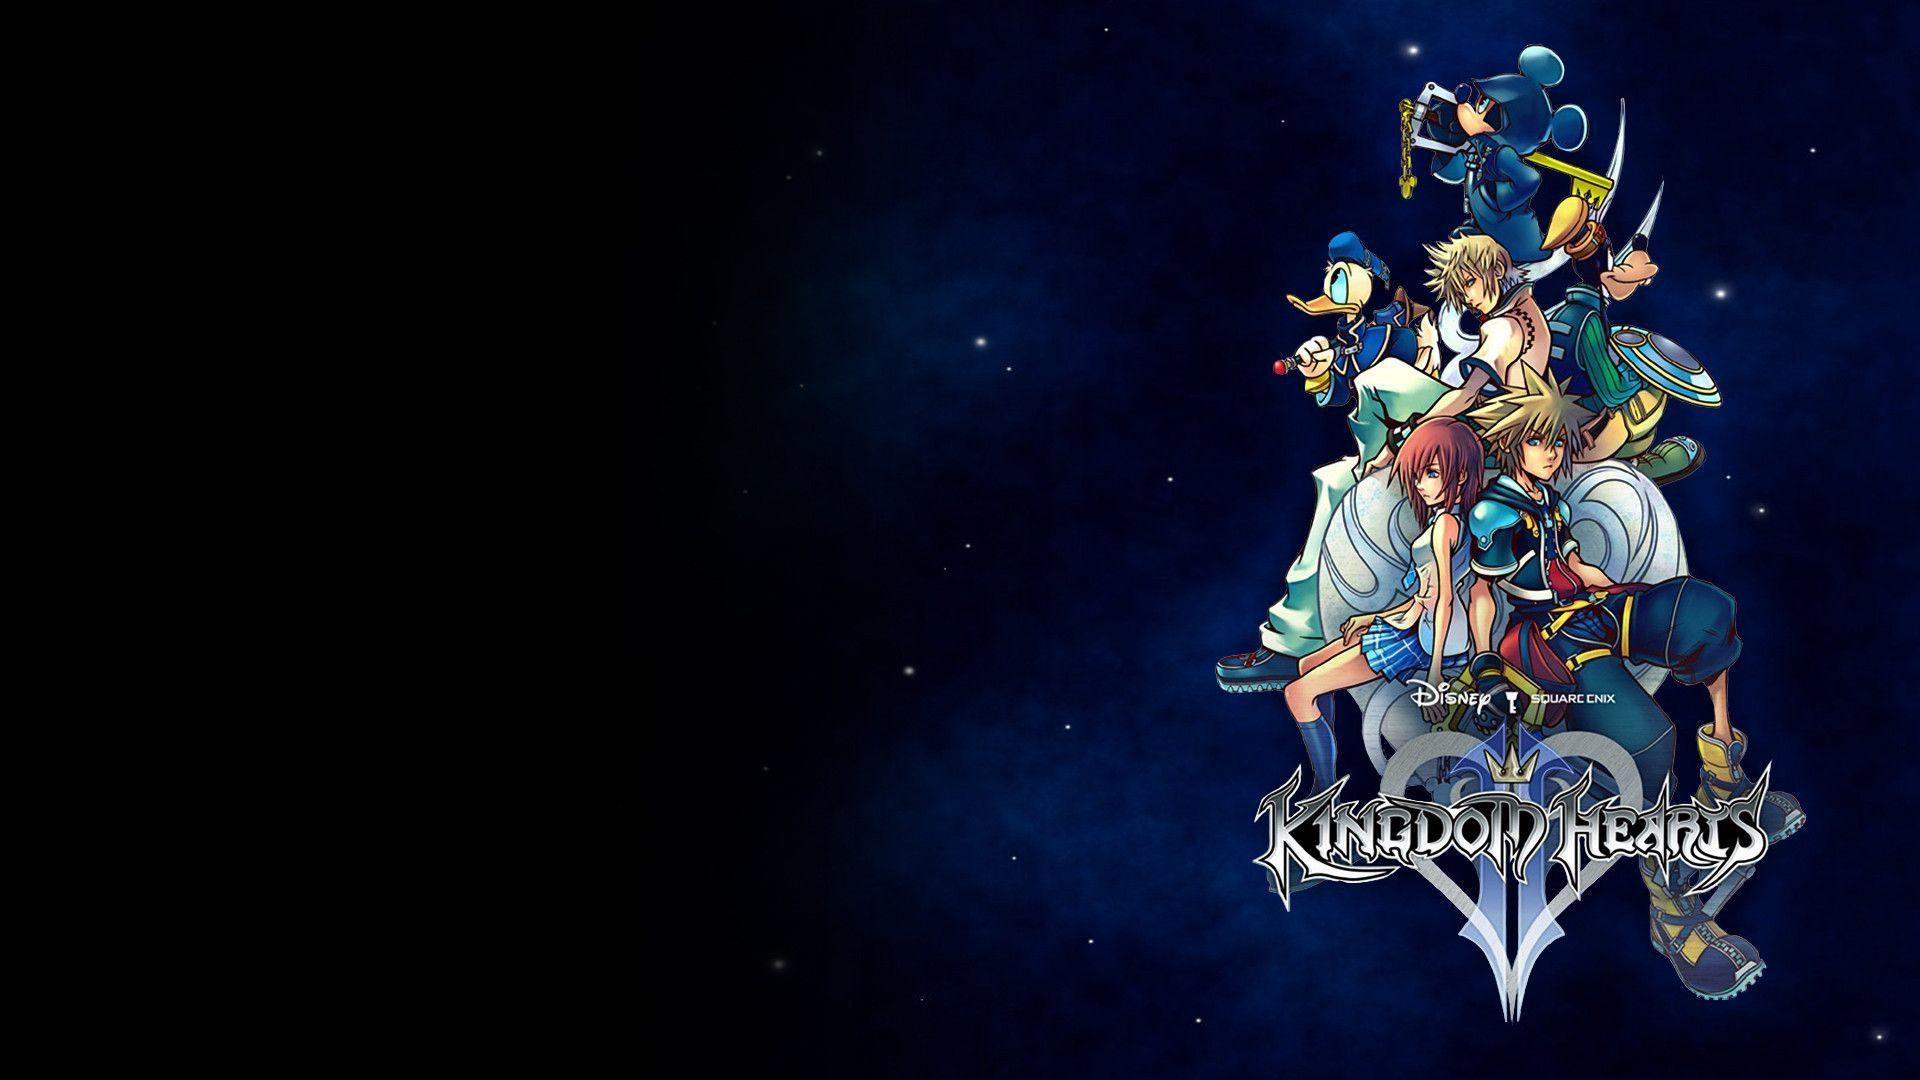 Wallpapers For > Kingdom Hearts 3 Wallpapers Hd 1920x1080